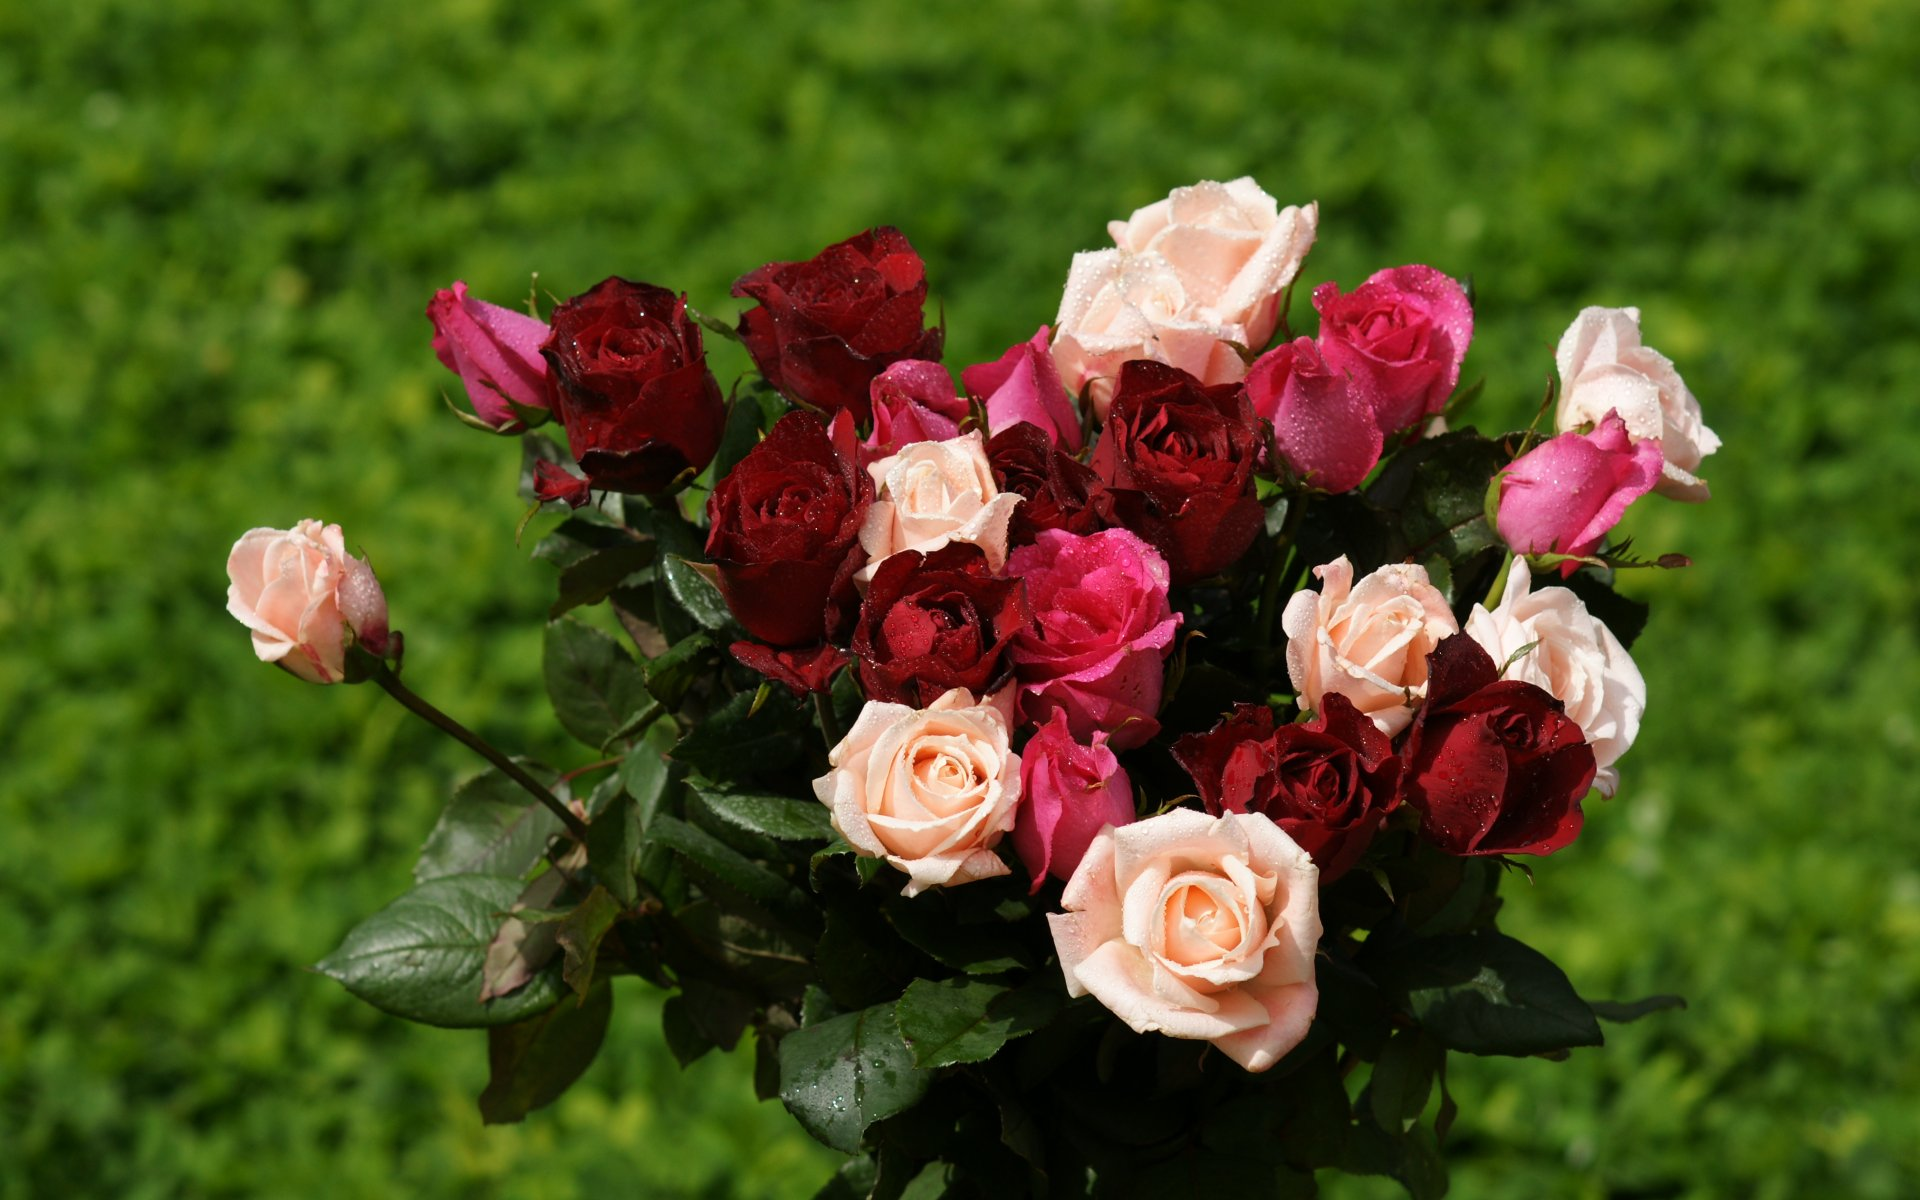 Wall Paper Wide Pink Rose Colours Soft Nature Flower: Roses Widescreen Wallpaper